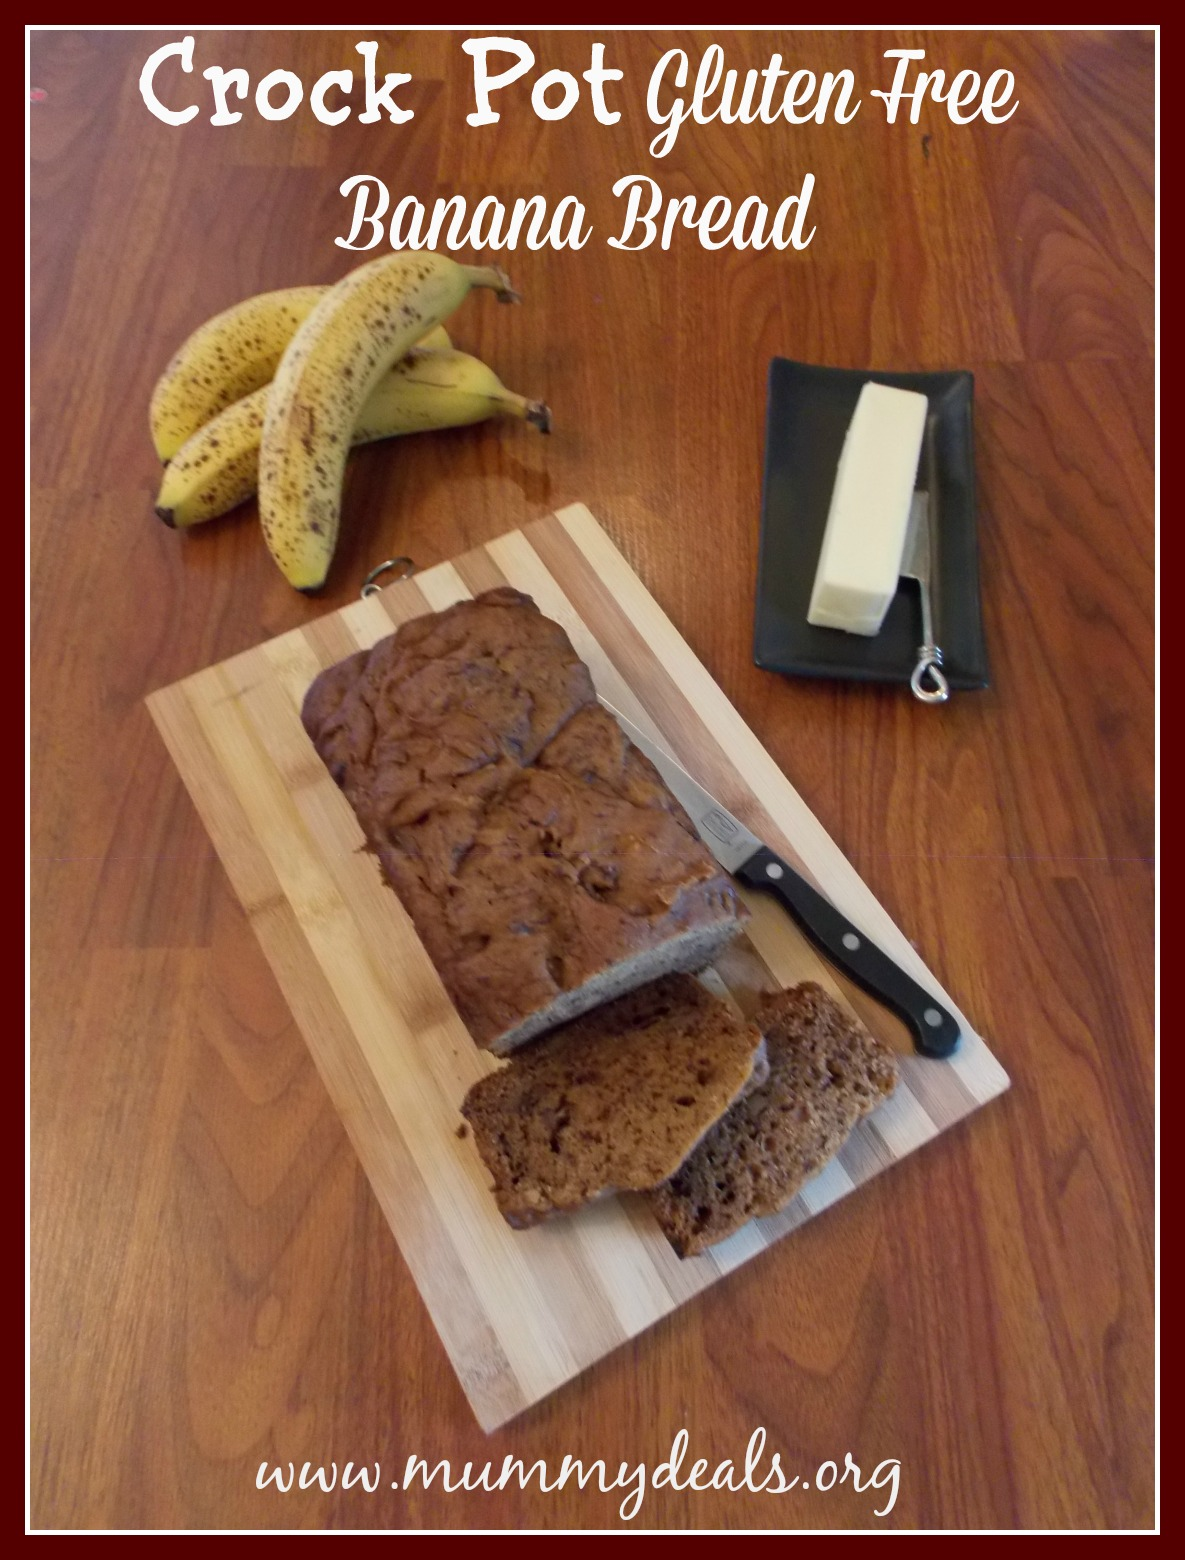 Crock Pot Gluten Free Banana Bread